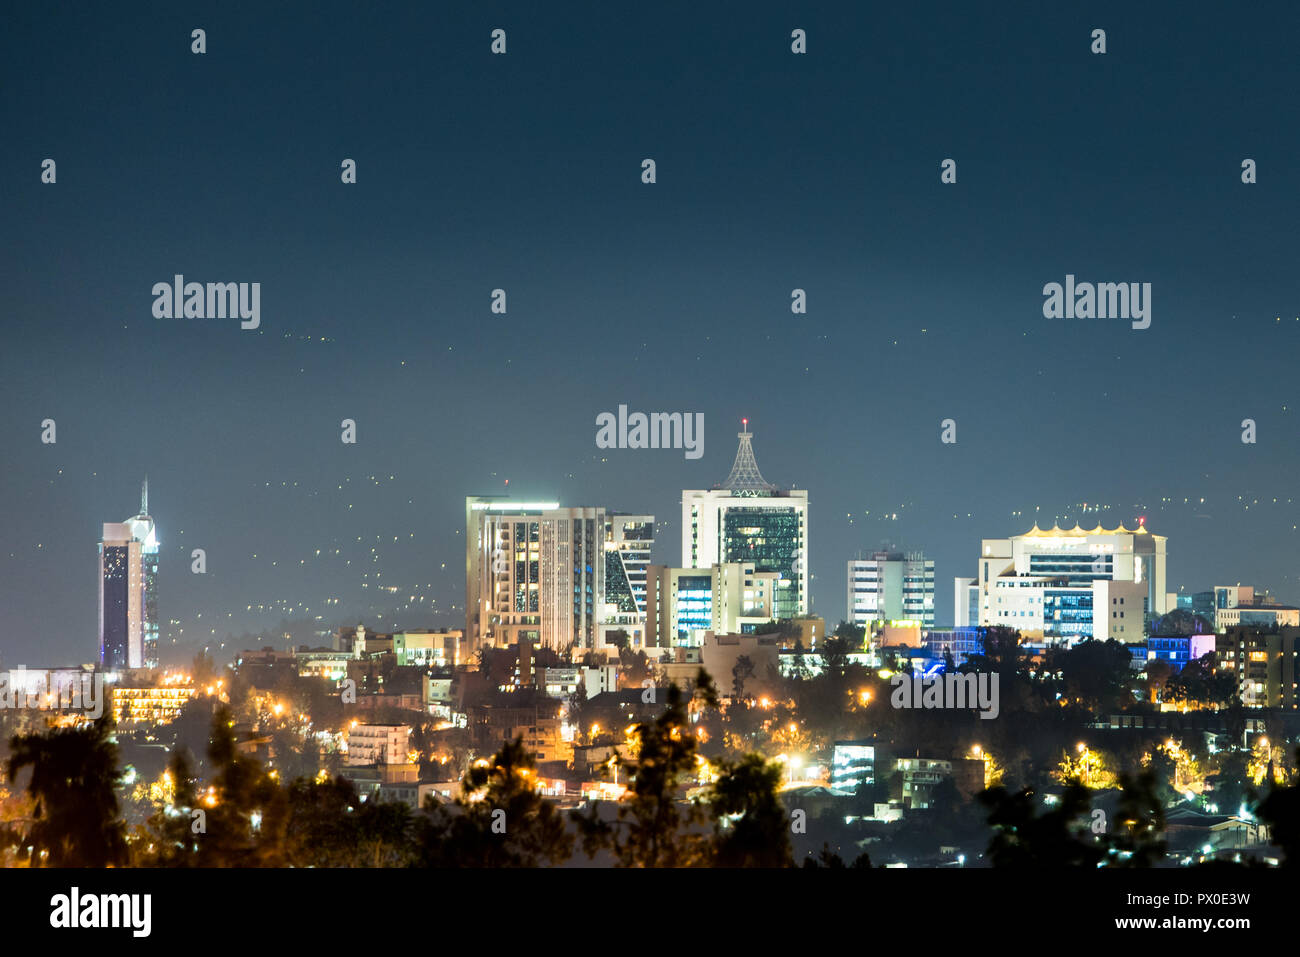 A closeup view of Kigali city skyline lit up at night, under a deep blue evening sky - Stock Image